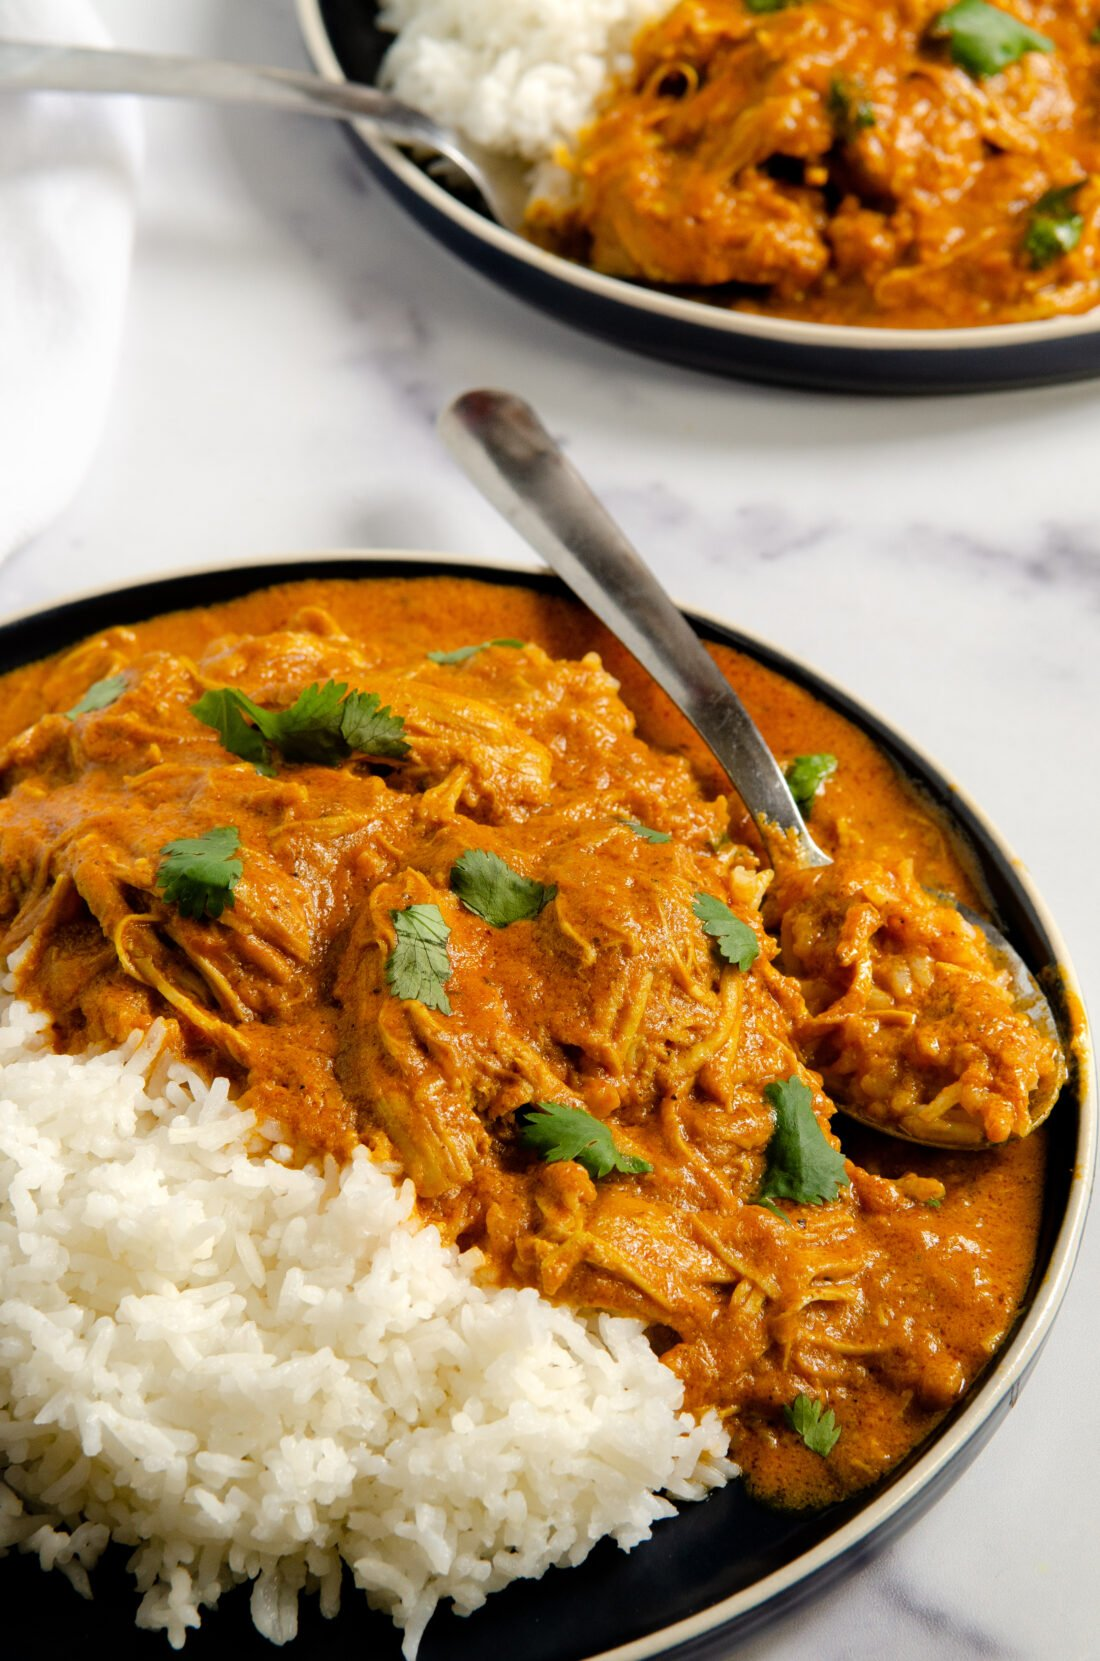 A quick and easy Indian Butter Chicken Recipe that's made in under 30 minutes. My Instant Pot Indian Butter Chicken is a buttery chicken that is smothered in a creamy tomato sauce. This flavorful dish is kid-approved and tastes even better as leftovers!